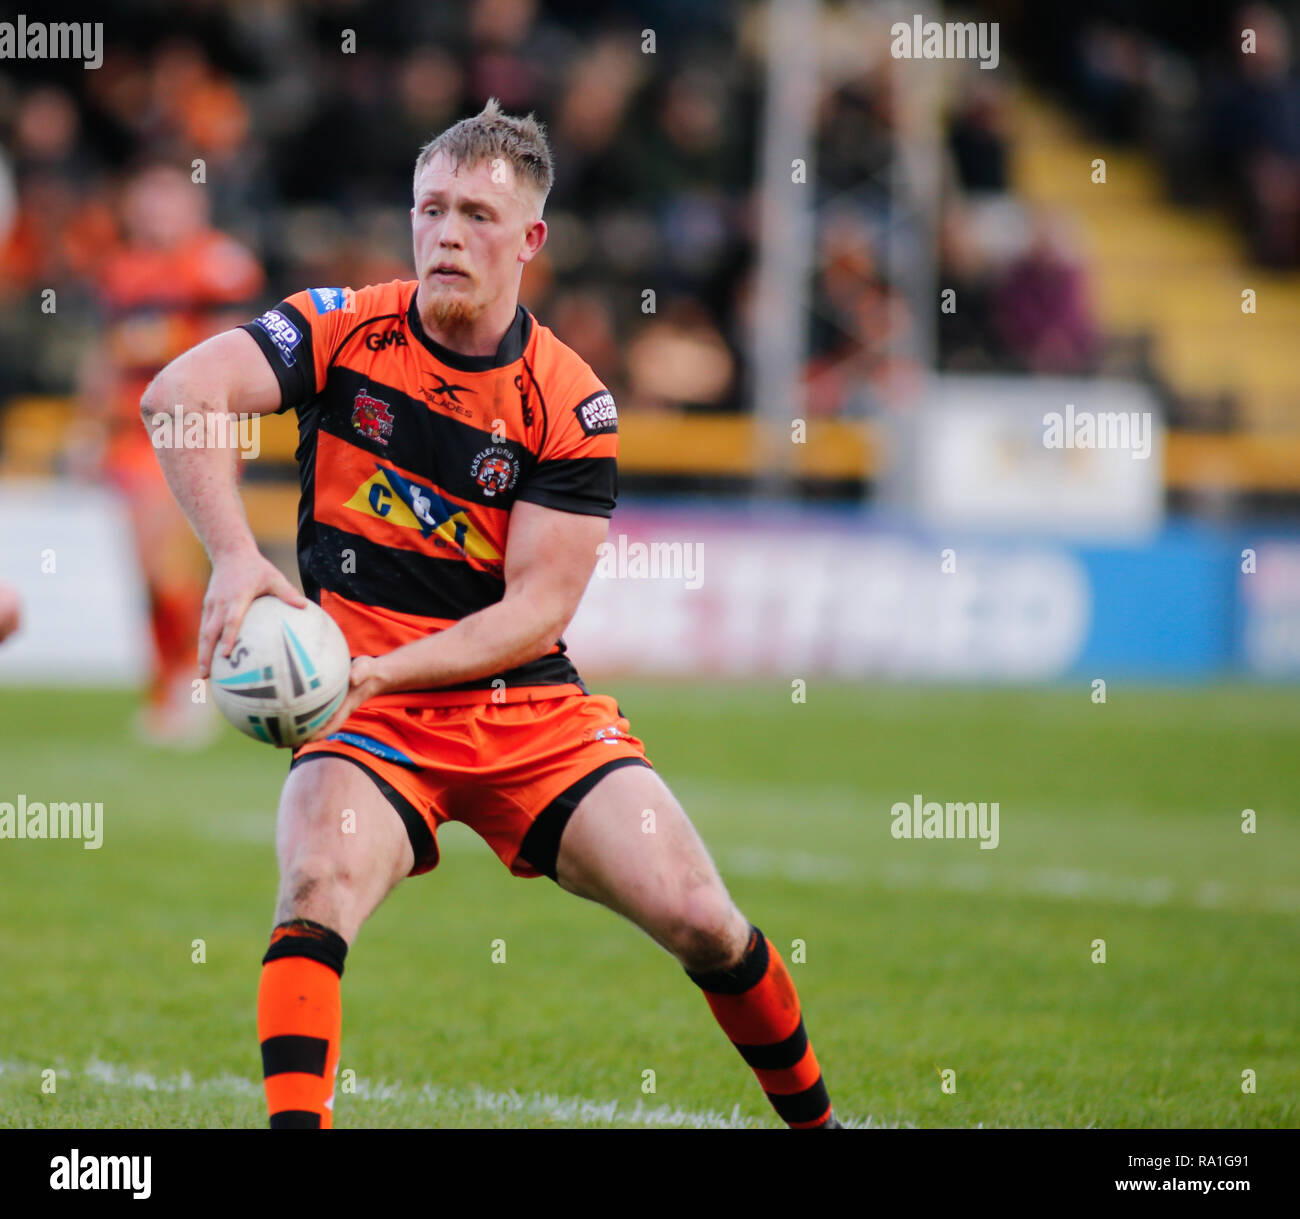 Castleford, UK. 30th December 2018. Cory Ashton of Castleford Tigers v Featherstone Rovers